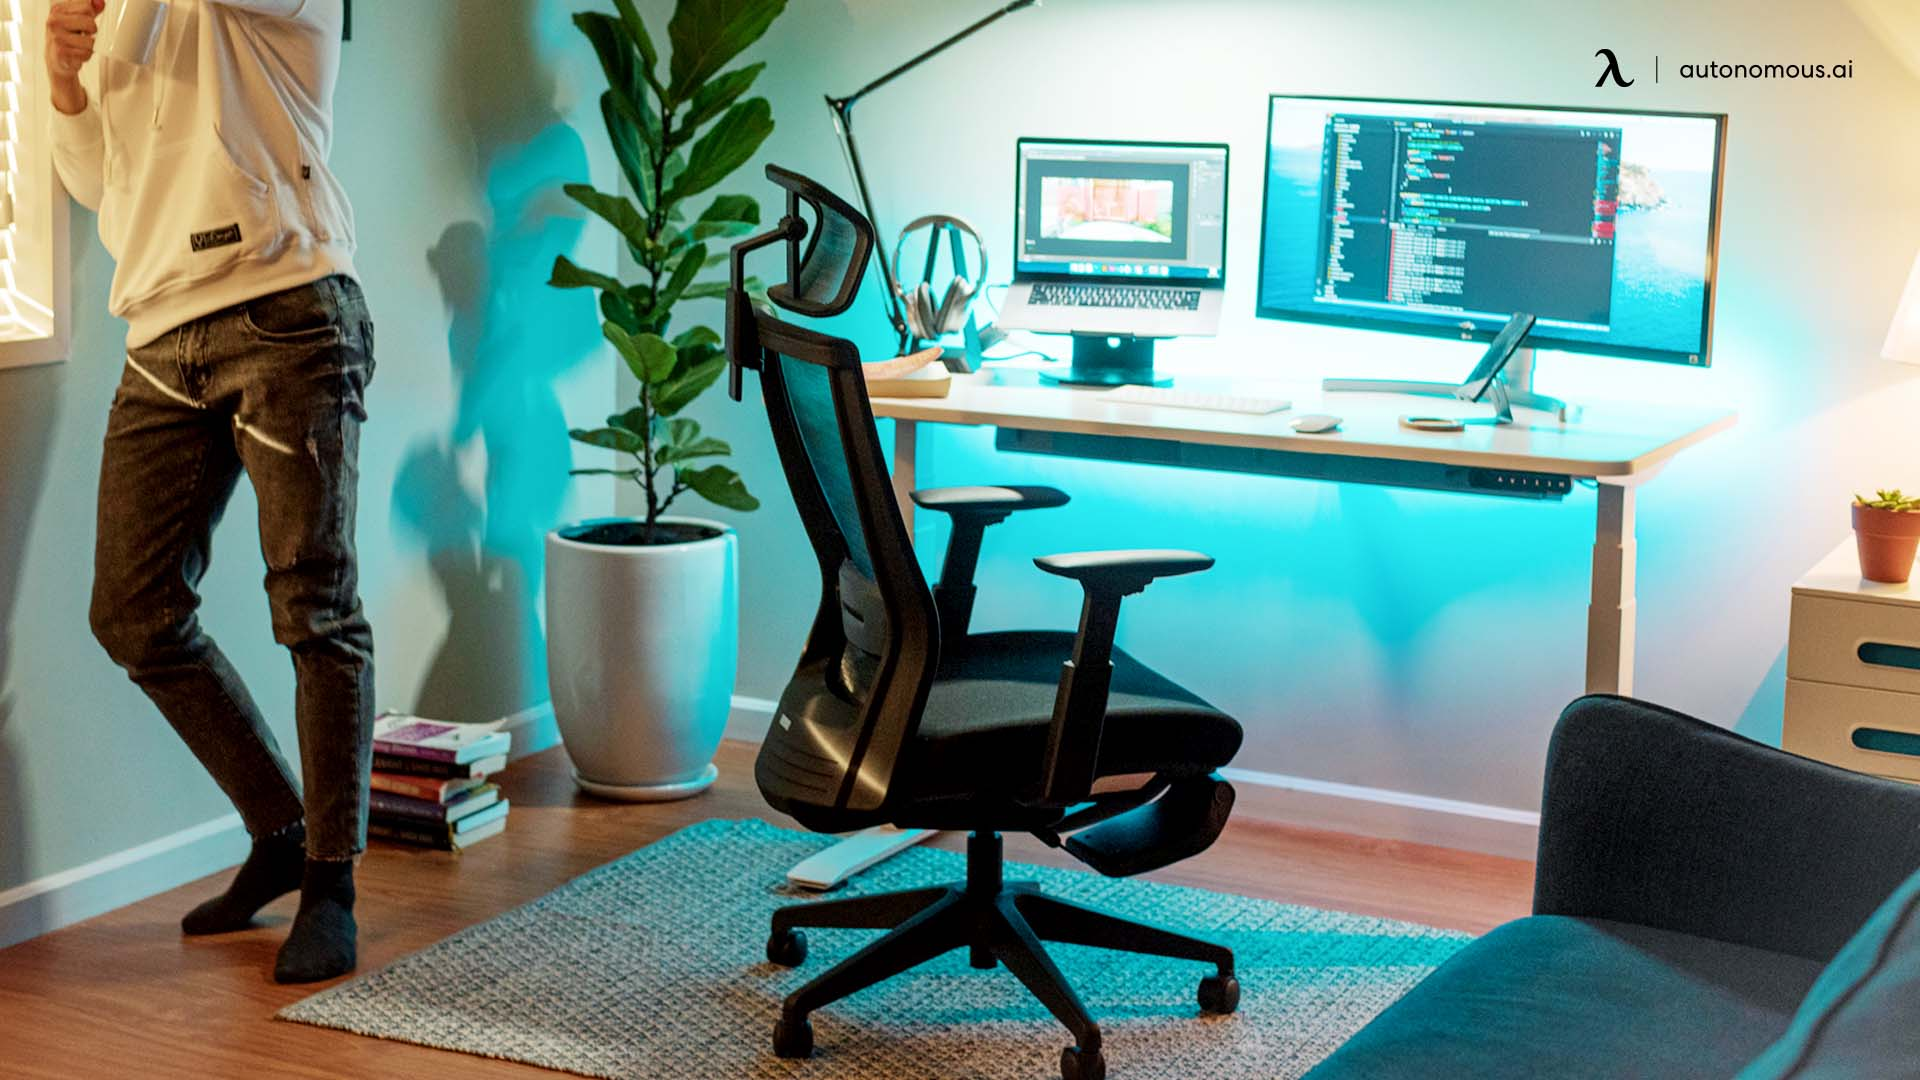 Why Only a Black Ergonomic Chair?